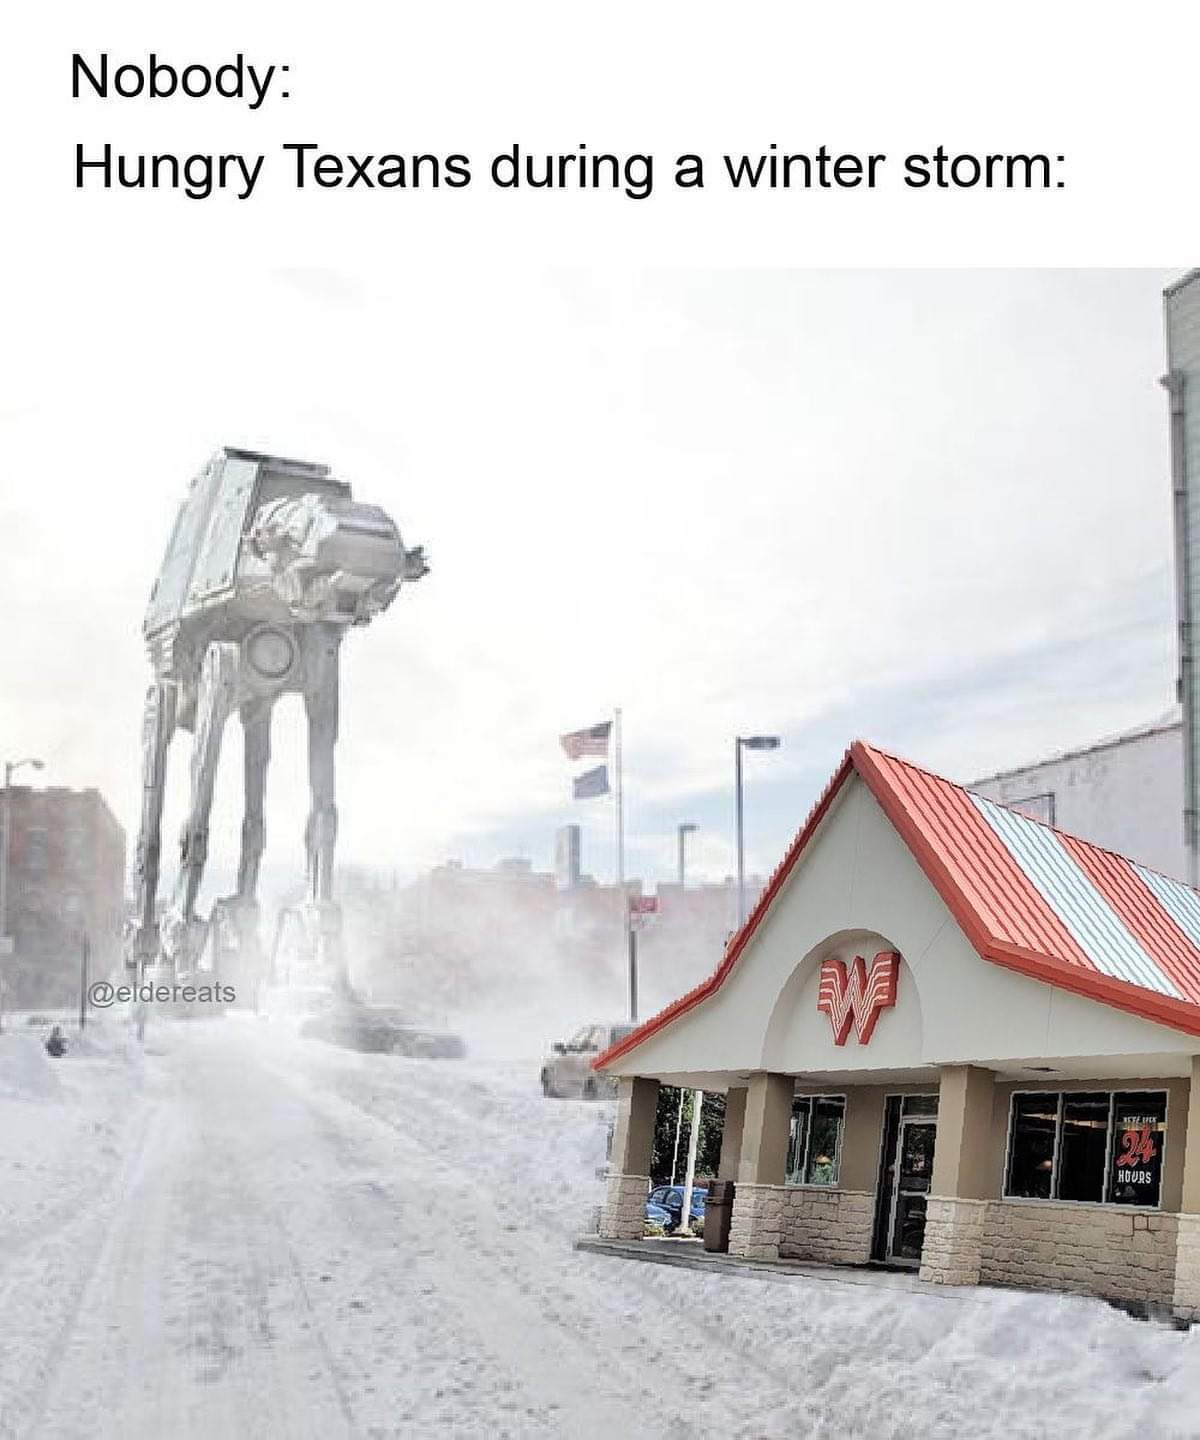 This coming from a hungry Texan! - meme